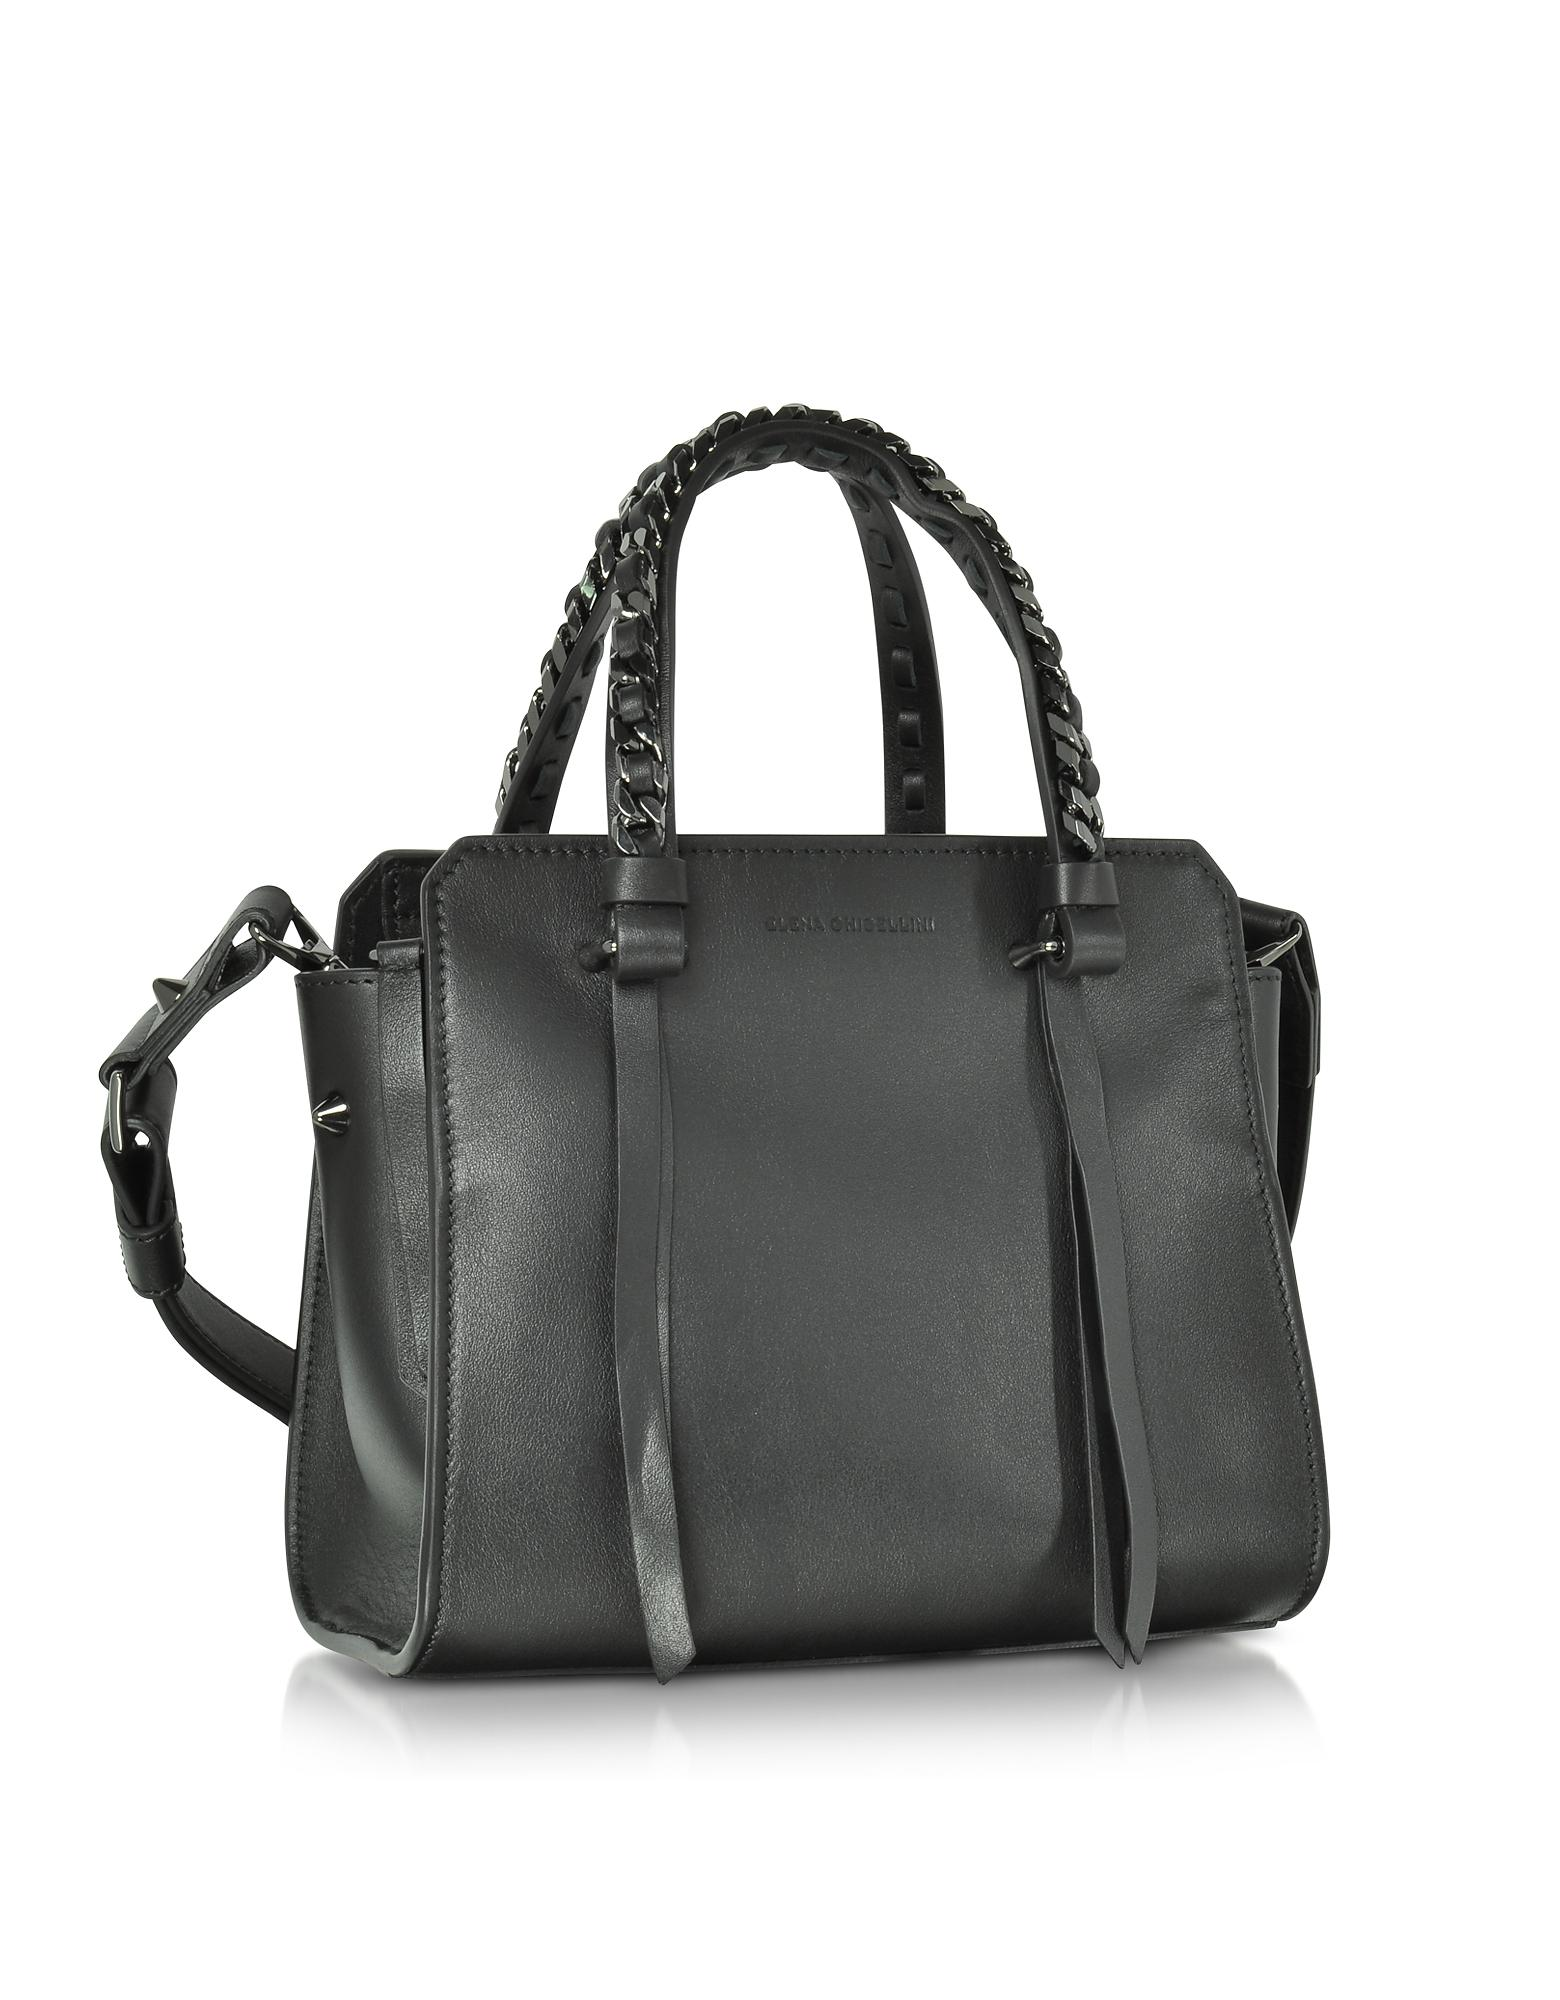 42d020f21ba Elena Ghisellini Small Usonia Sensua Black Leather Tote Bag in Black ...